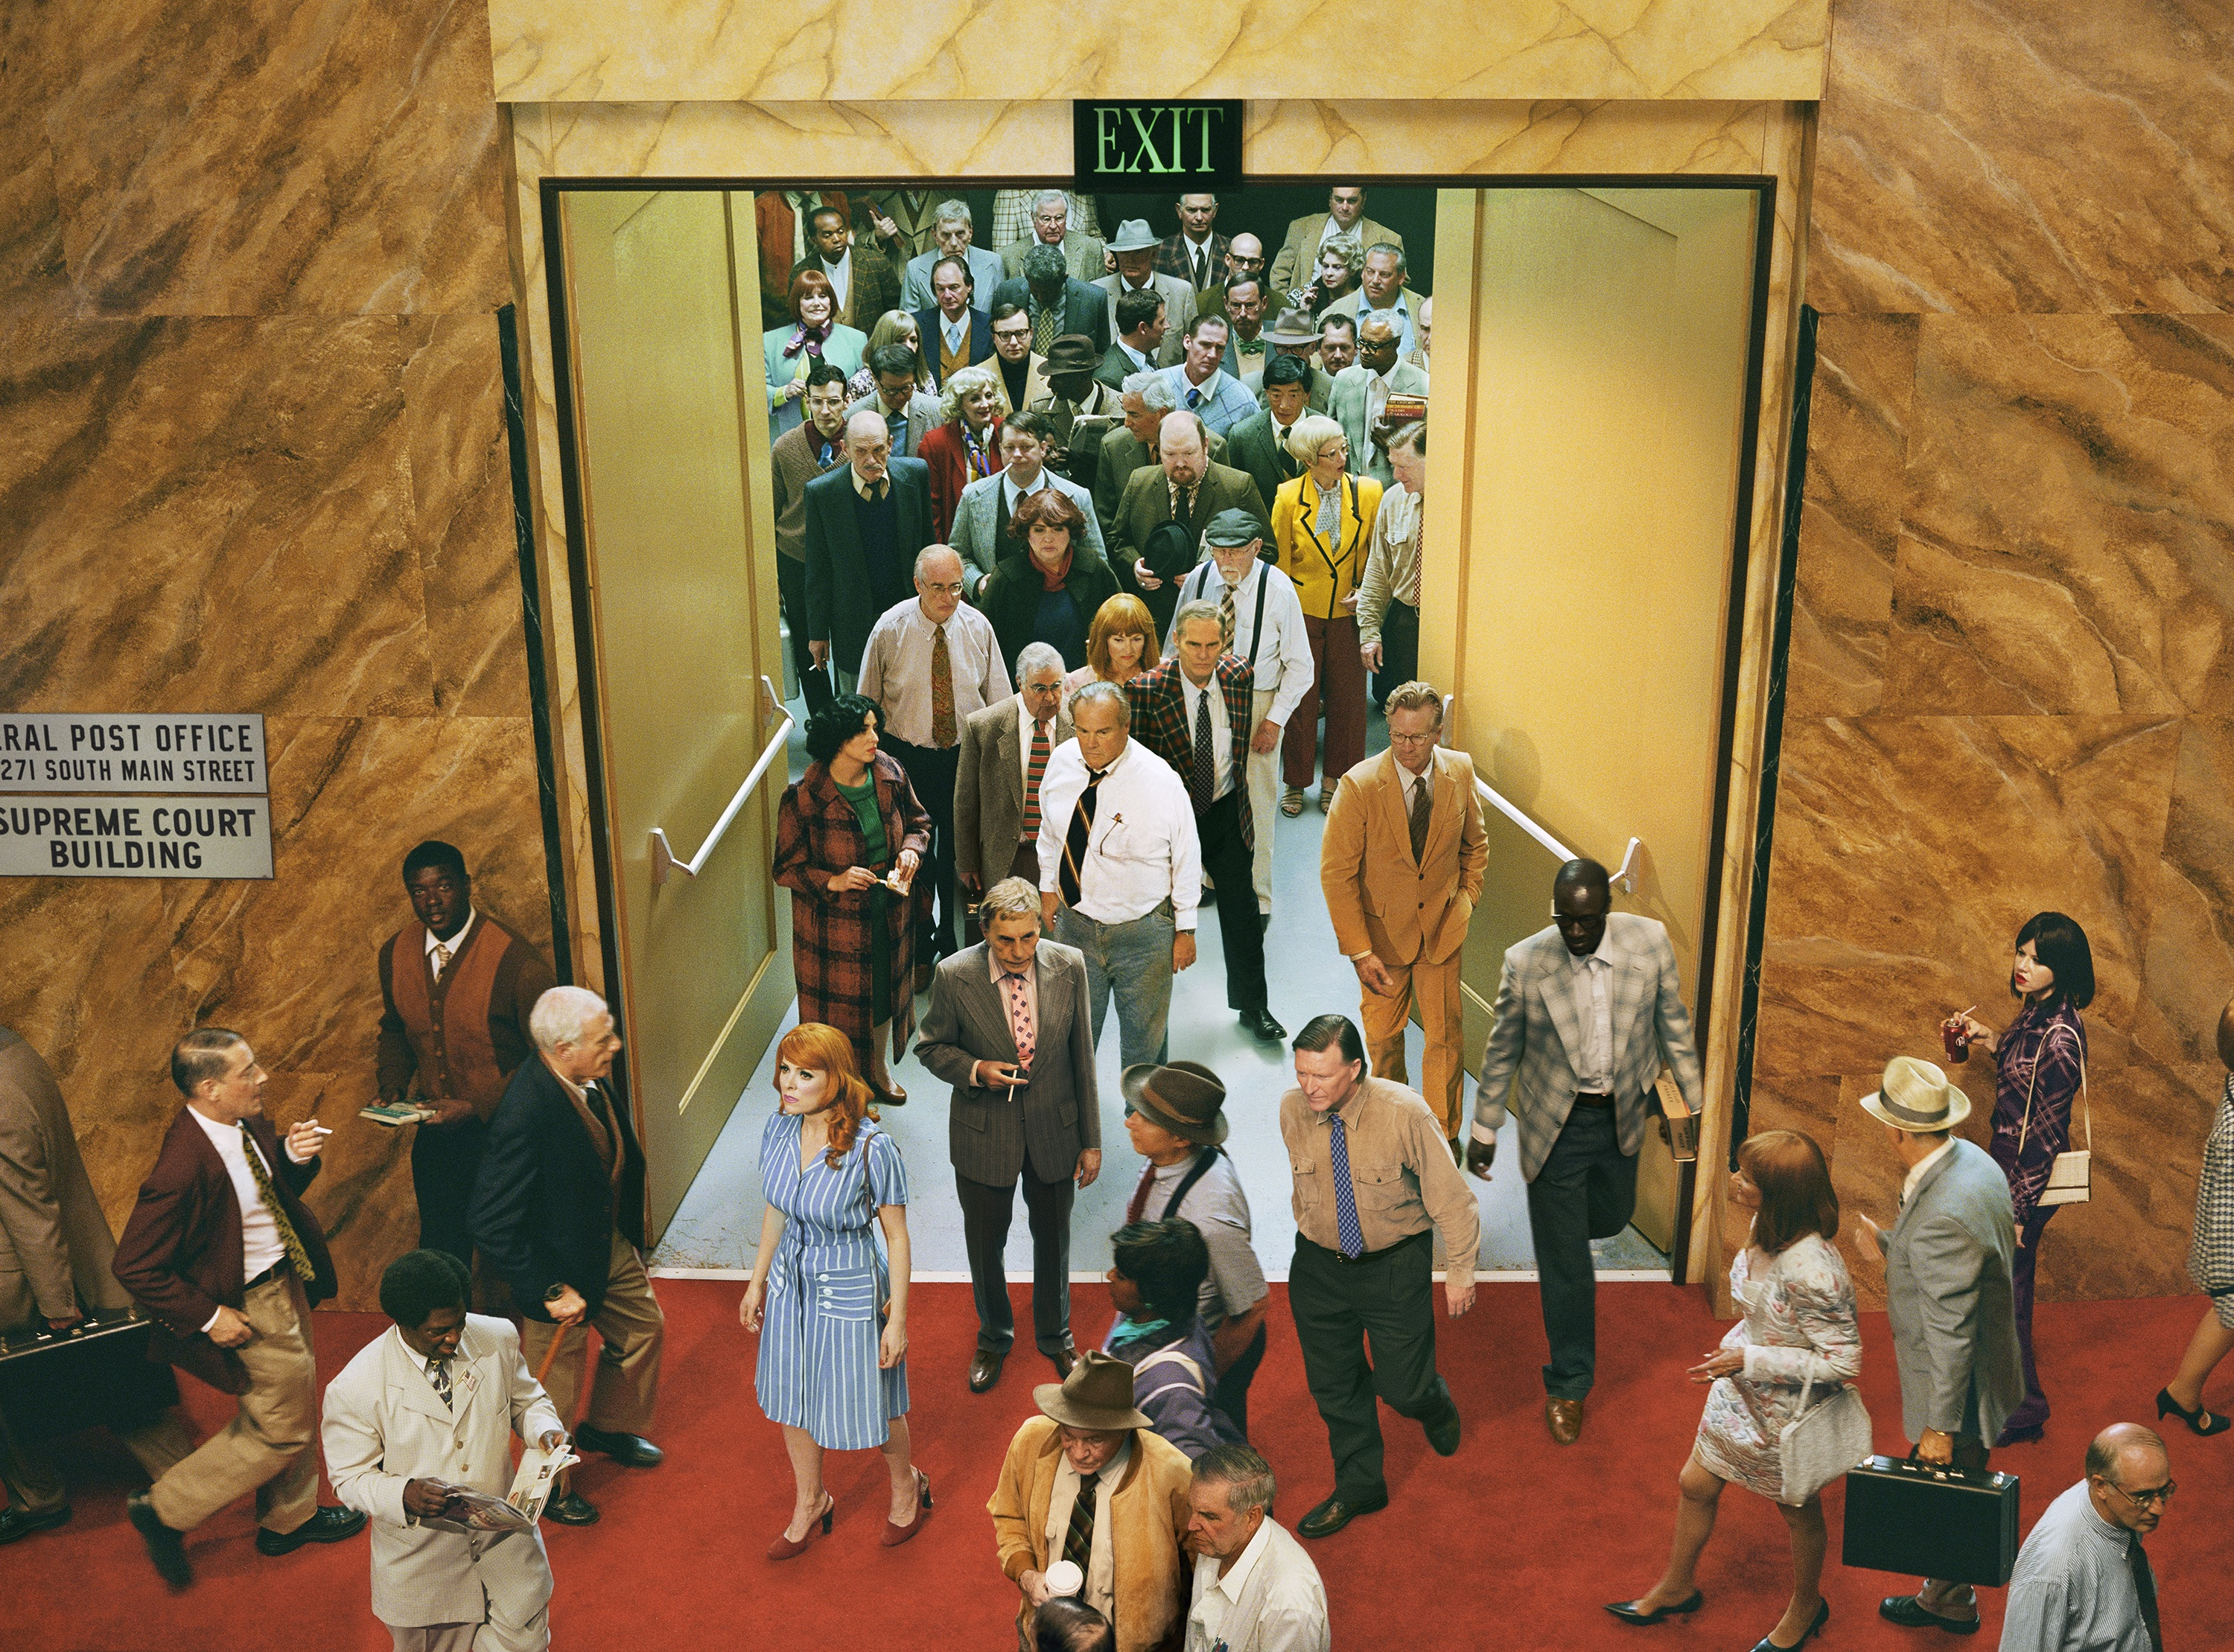 Alex Prager, Crowd #8 (City Hall), 2013. Courtesy Alex Prager Studio and Lehmann Maupin, New York, Hong Kong, and Seoul